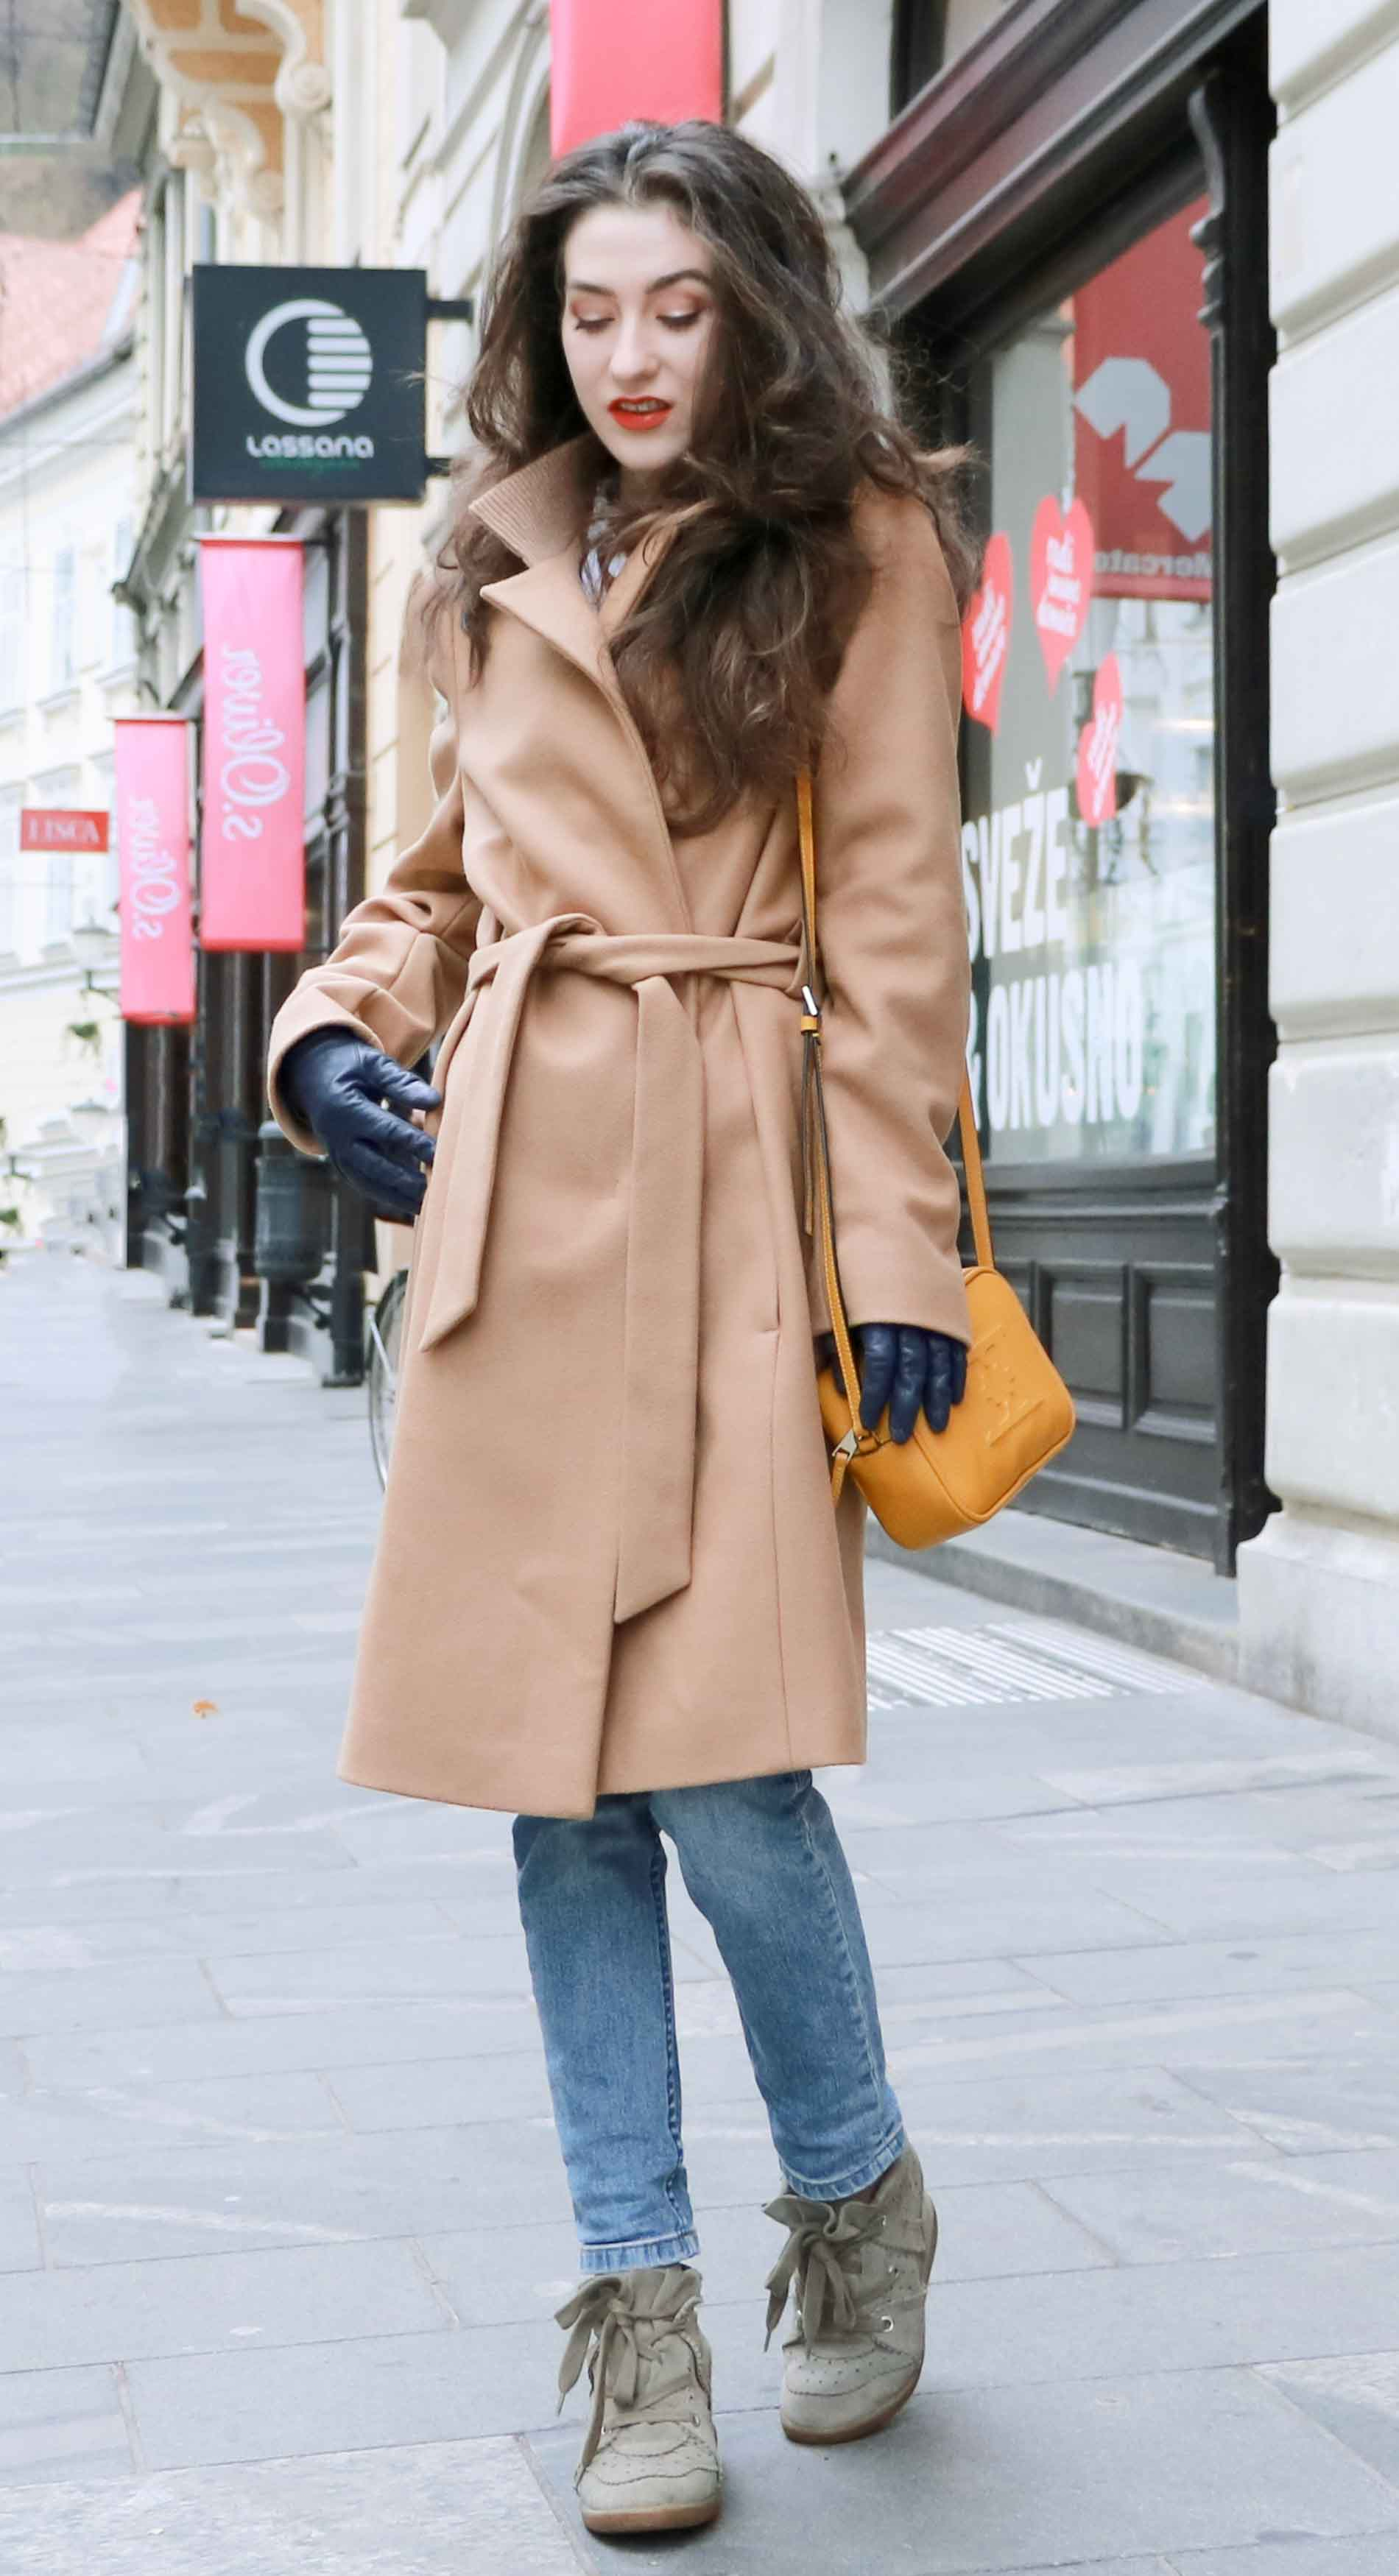 Fashion Blogger Veronika Lipar of Brunette from Wall Street dressed casual outfit, ESCADA wrap camel coat, A.P.C. blue jeans, Isabel Marant olive Bobby Sneakers, yellow shoulder bag from Escada, white Victorian blouse on the streets of Ljubljana